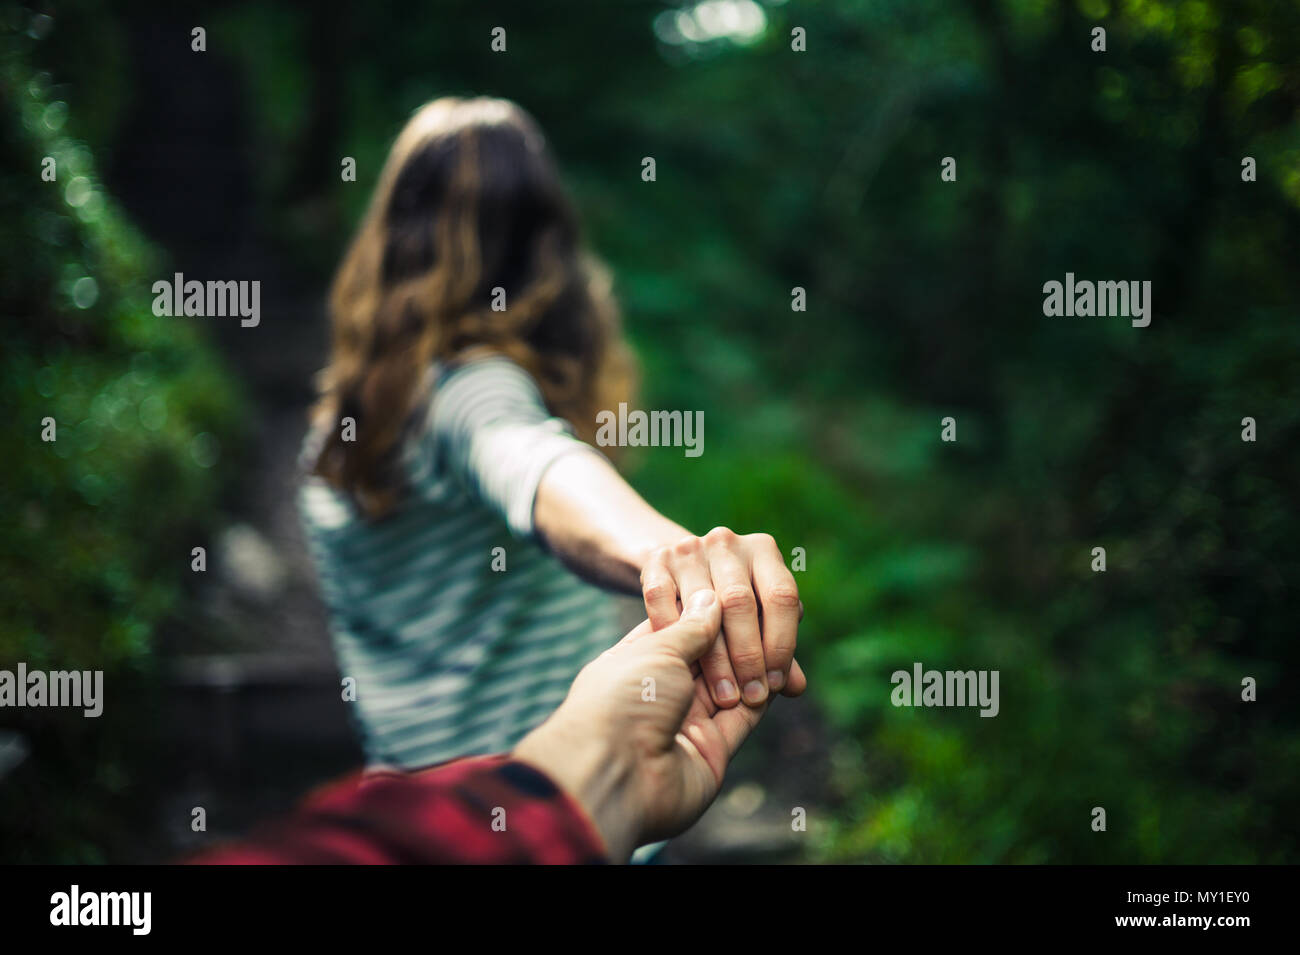 A young woman is guiding her boyfriend by the hand in a forest - Stock Image